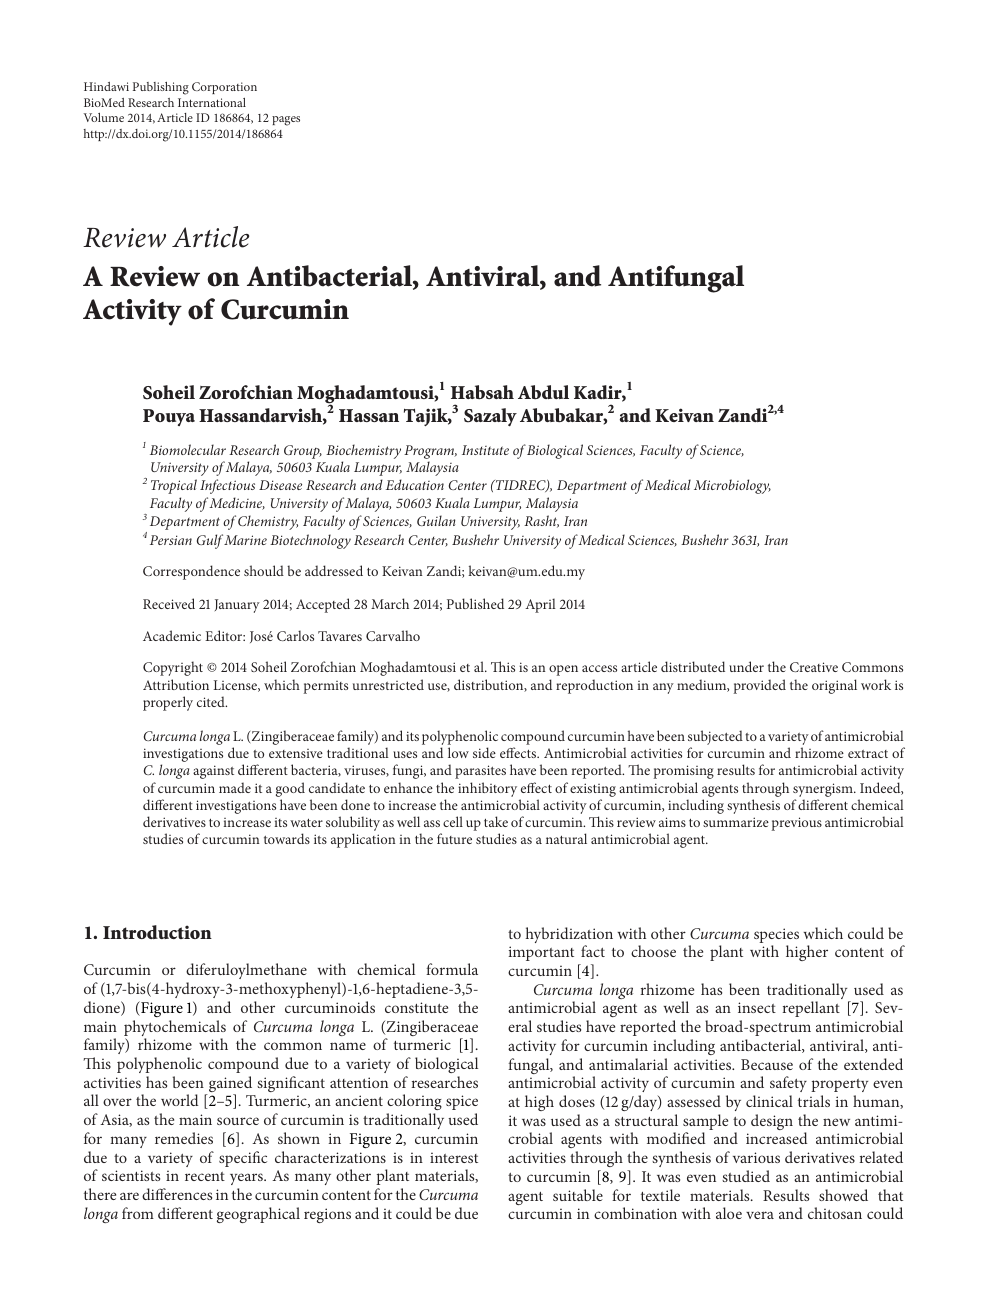 A Review on Antibacterial, Antiviral, and Antifungal Activity of